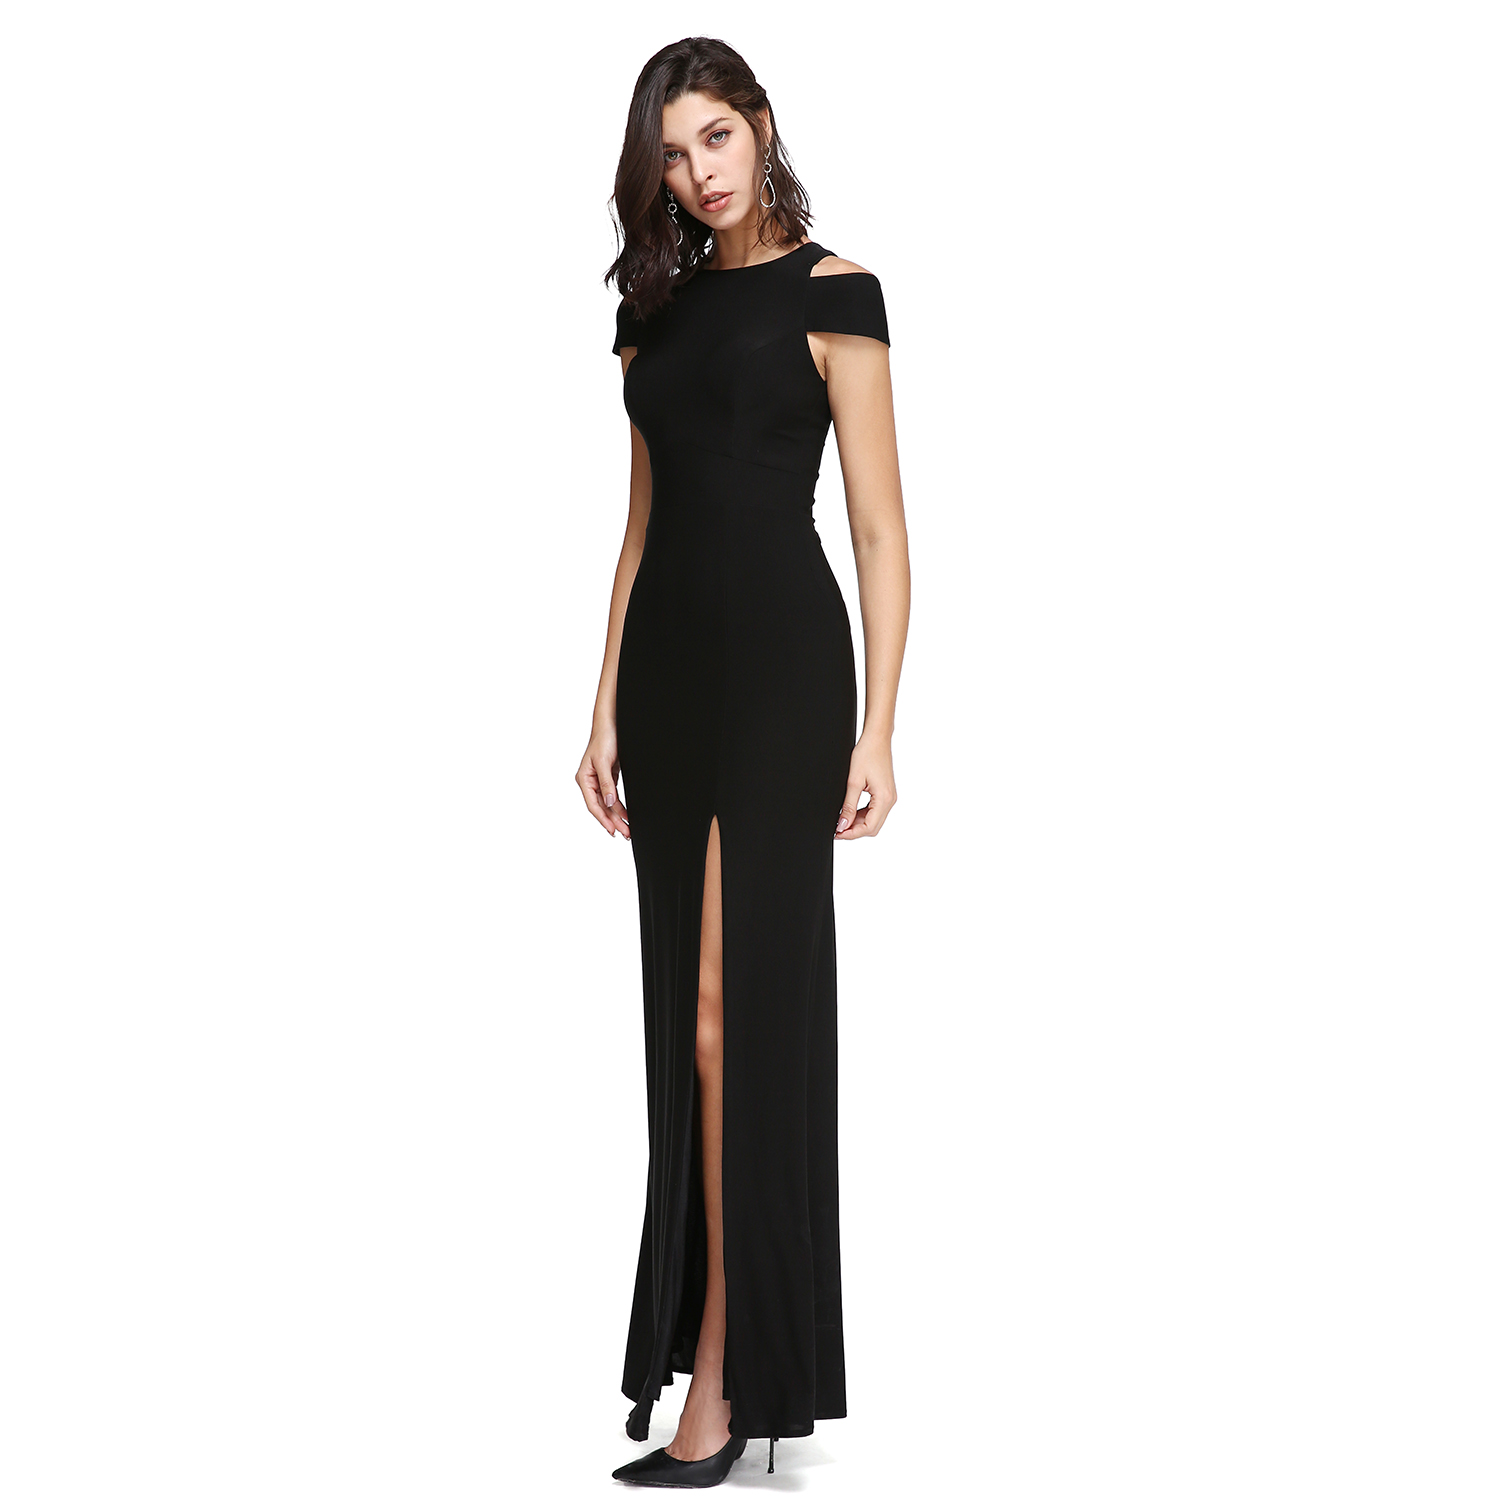 TS Couture Sheath Column Off the shoulder Ankle Length Jersey Prom Formal  Evening Dress with Split Front Party Gowns-in Prom Dresses from Weddings    Events ... 1739d073a59b